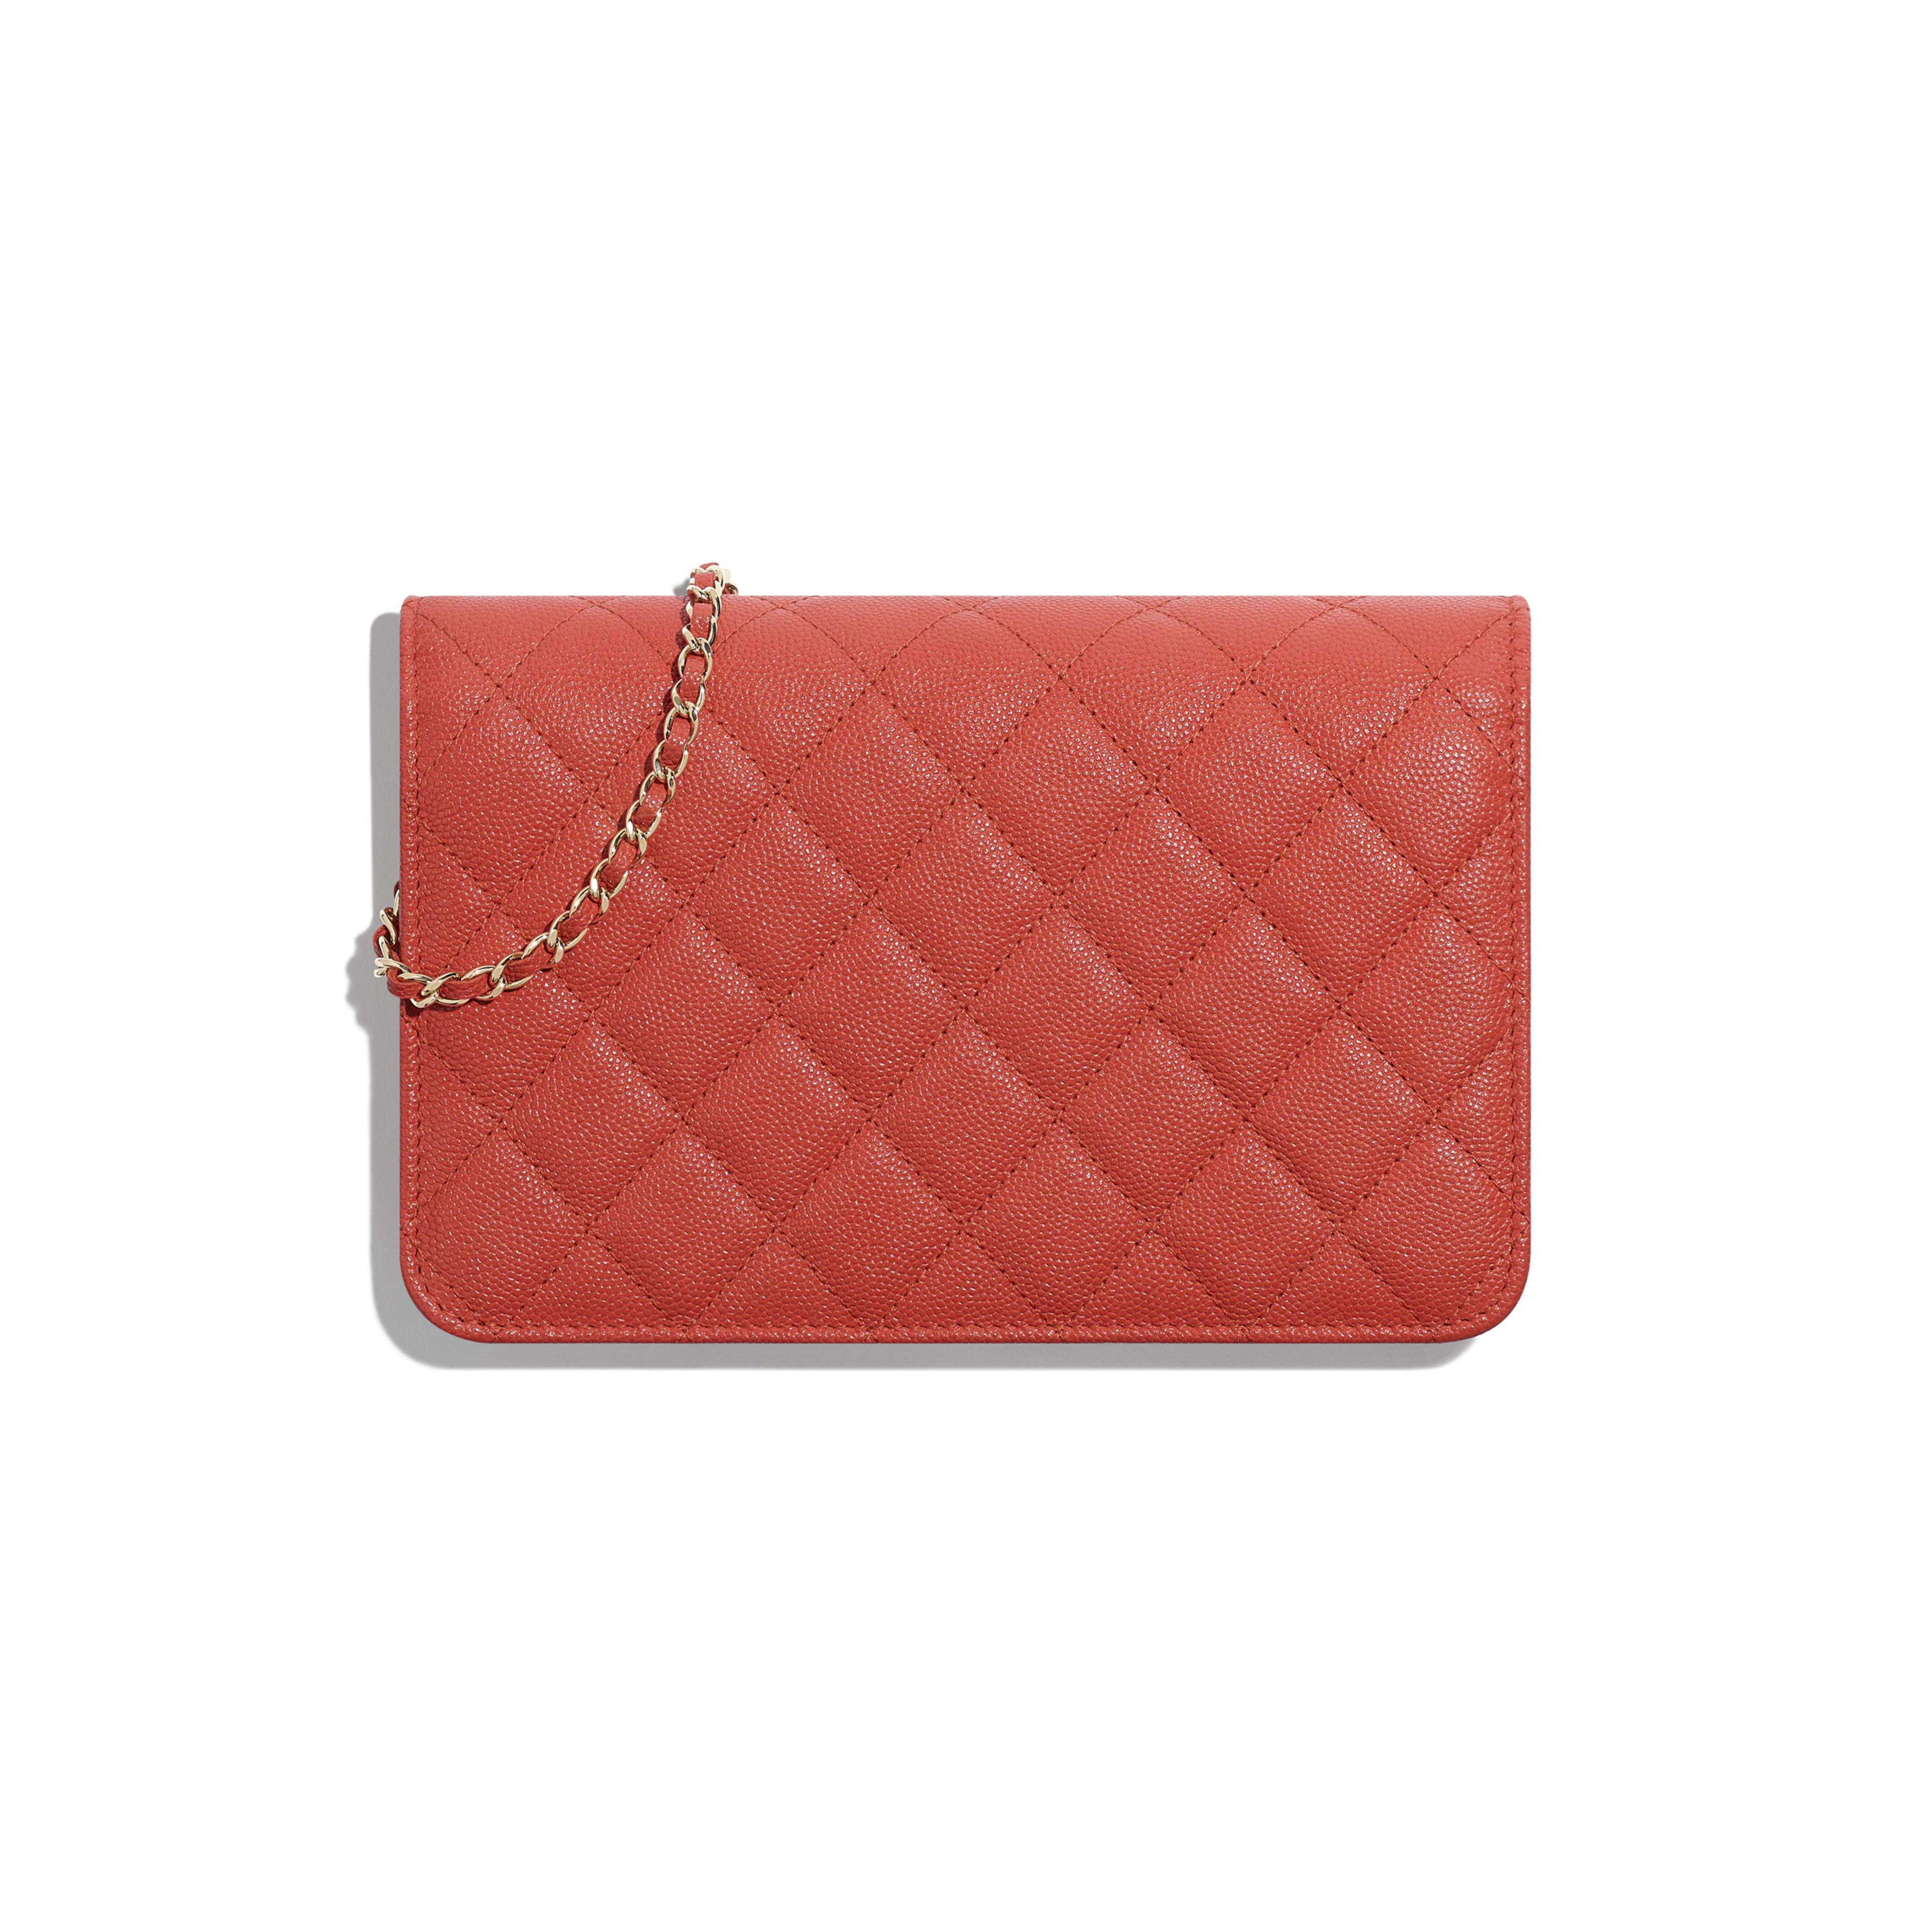 Wallet on Chain - Red - Grained Goatskin & Gold-Tone Metal - Alternative view - see full sized version